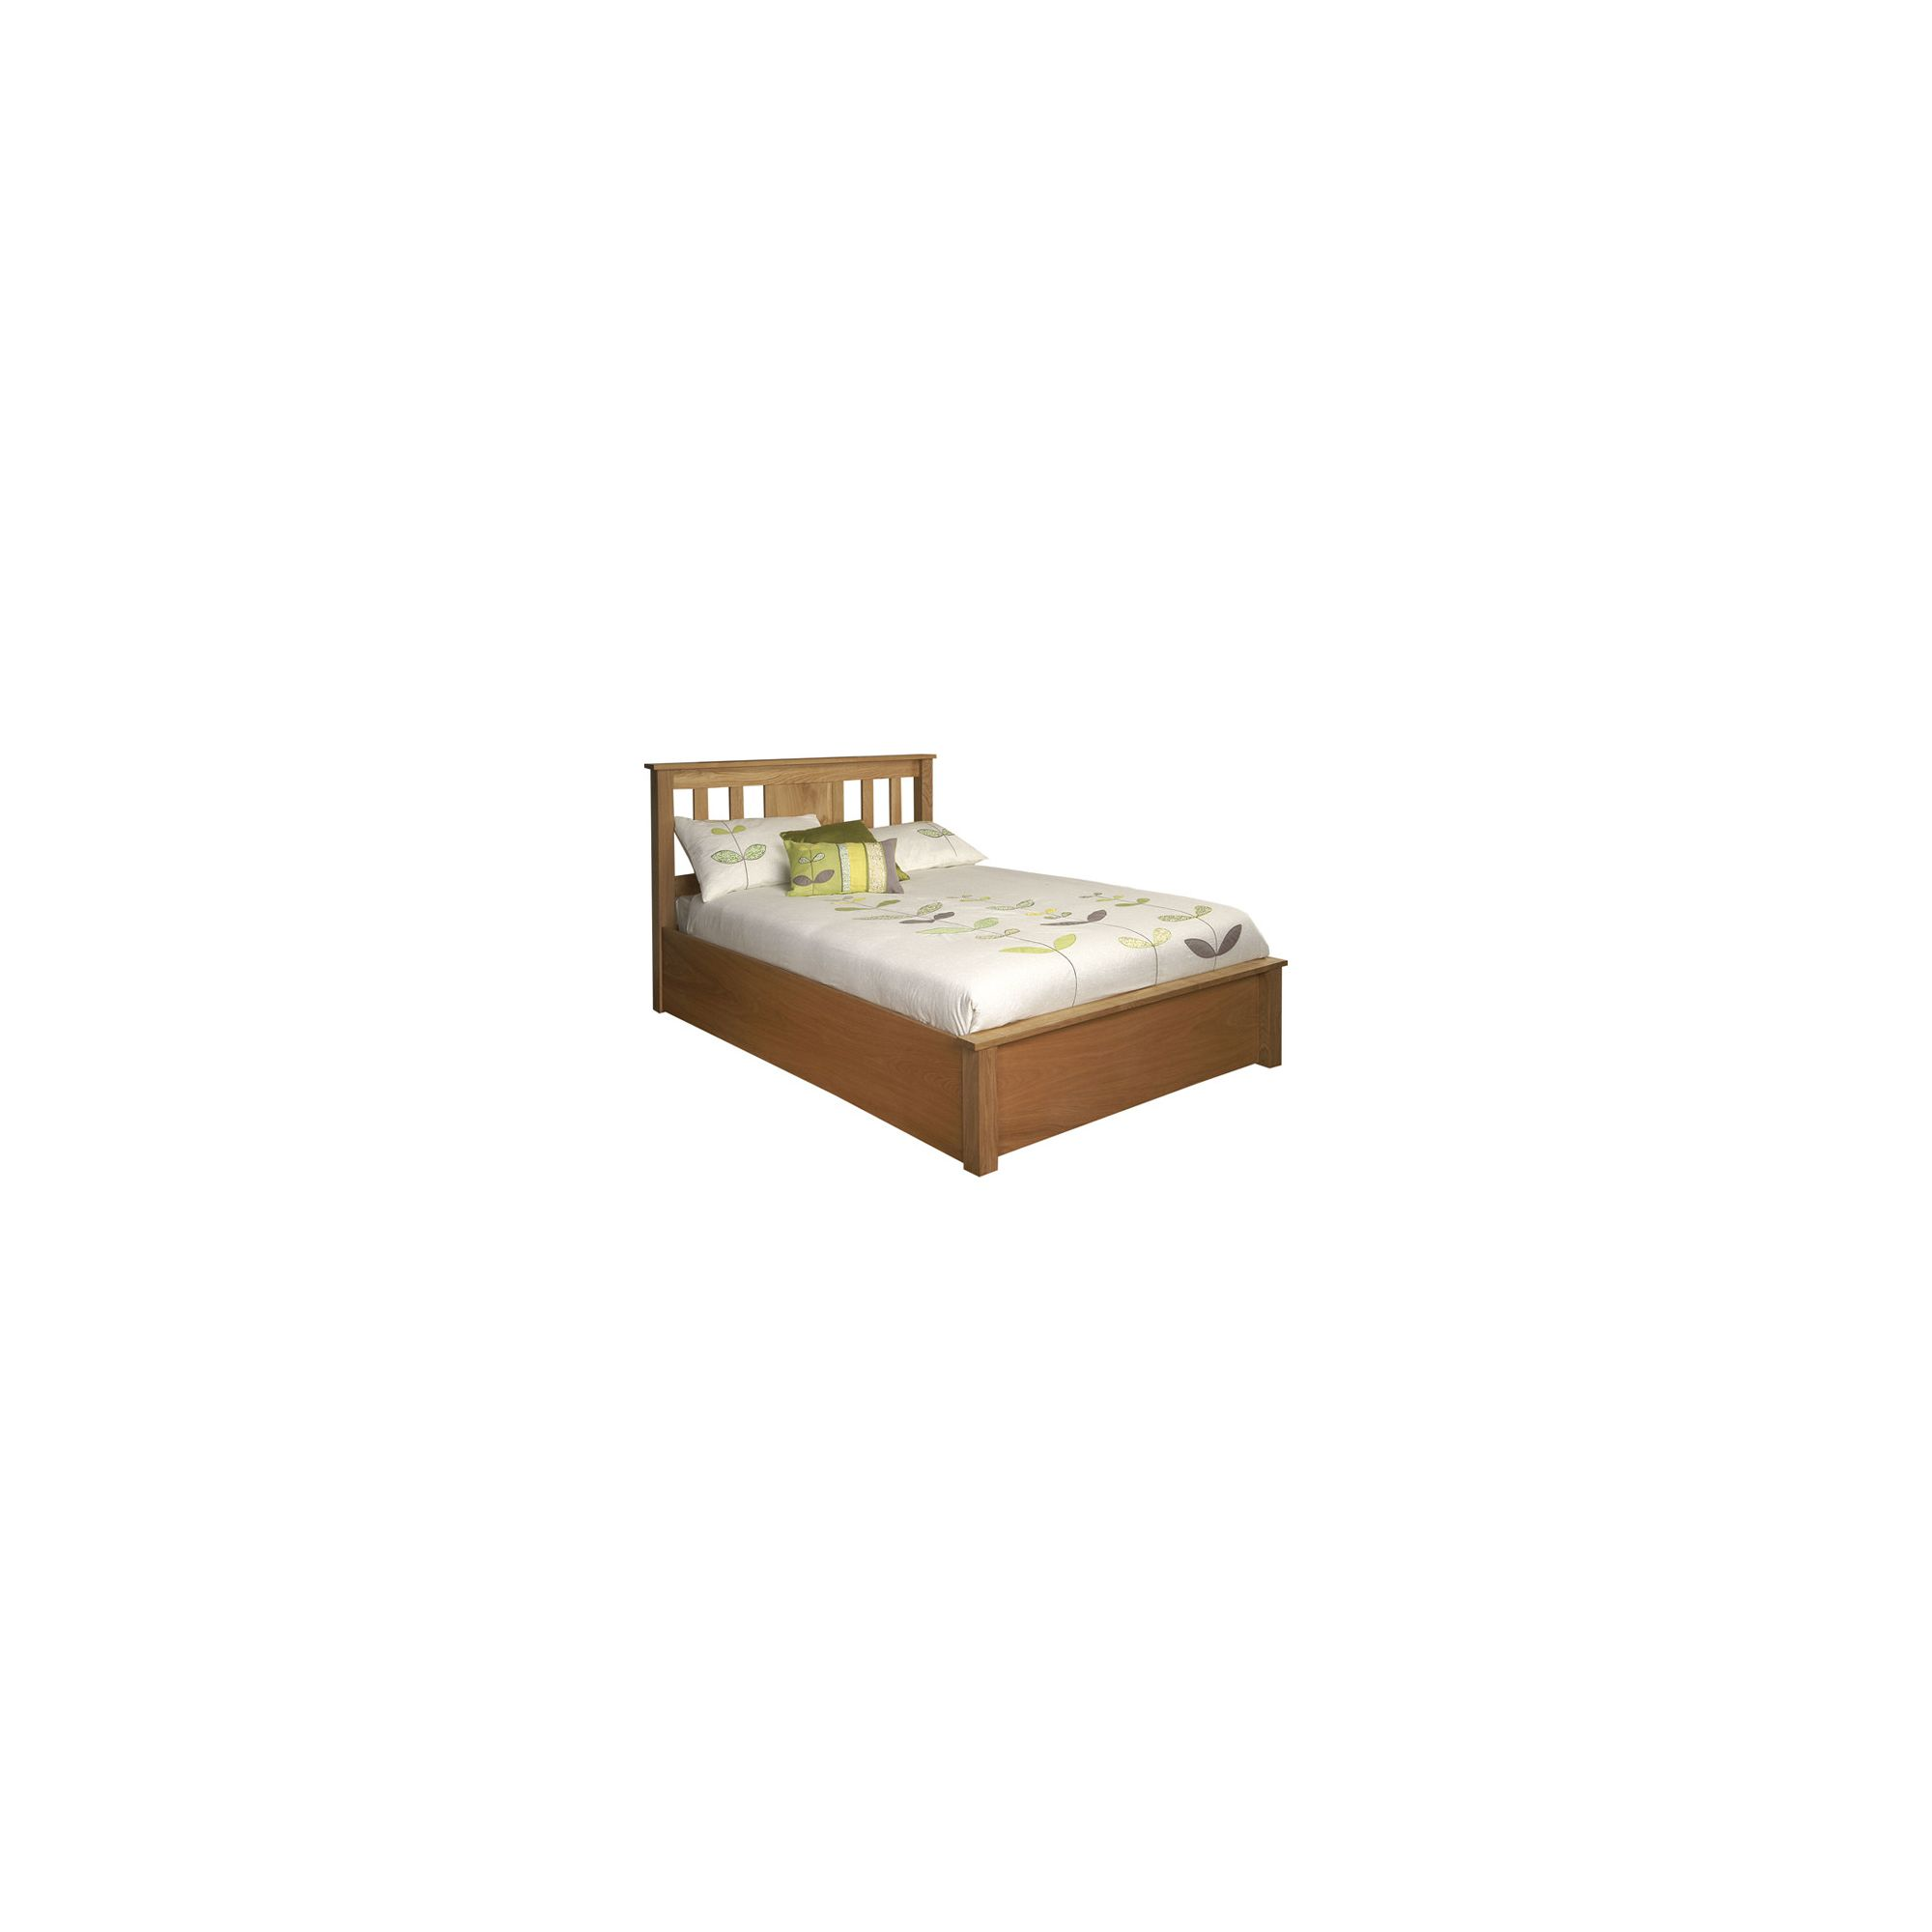 Limelight Terran Storage Bedstead - Super King at Tesco Direct